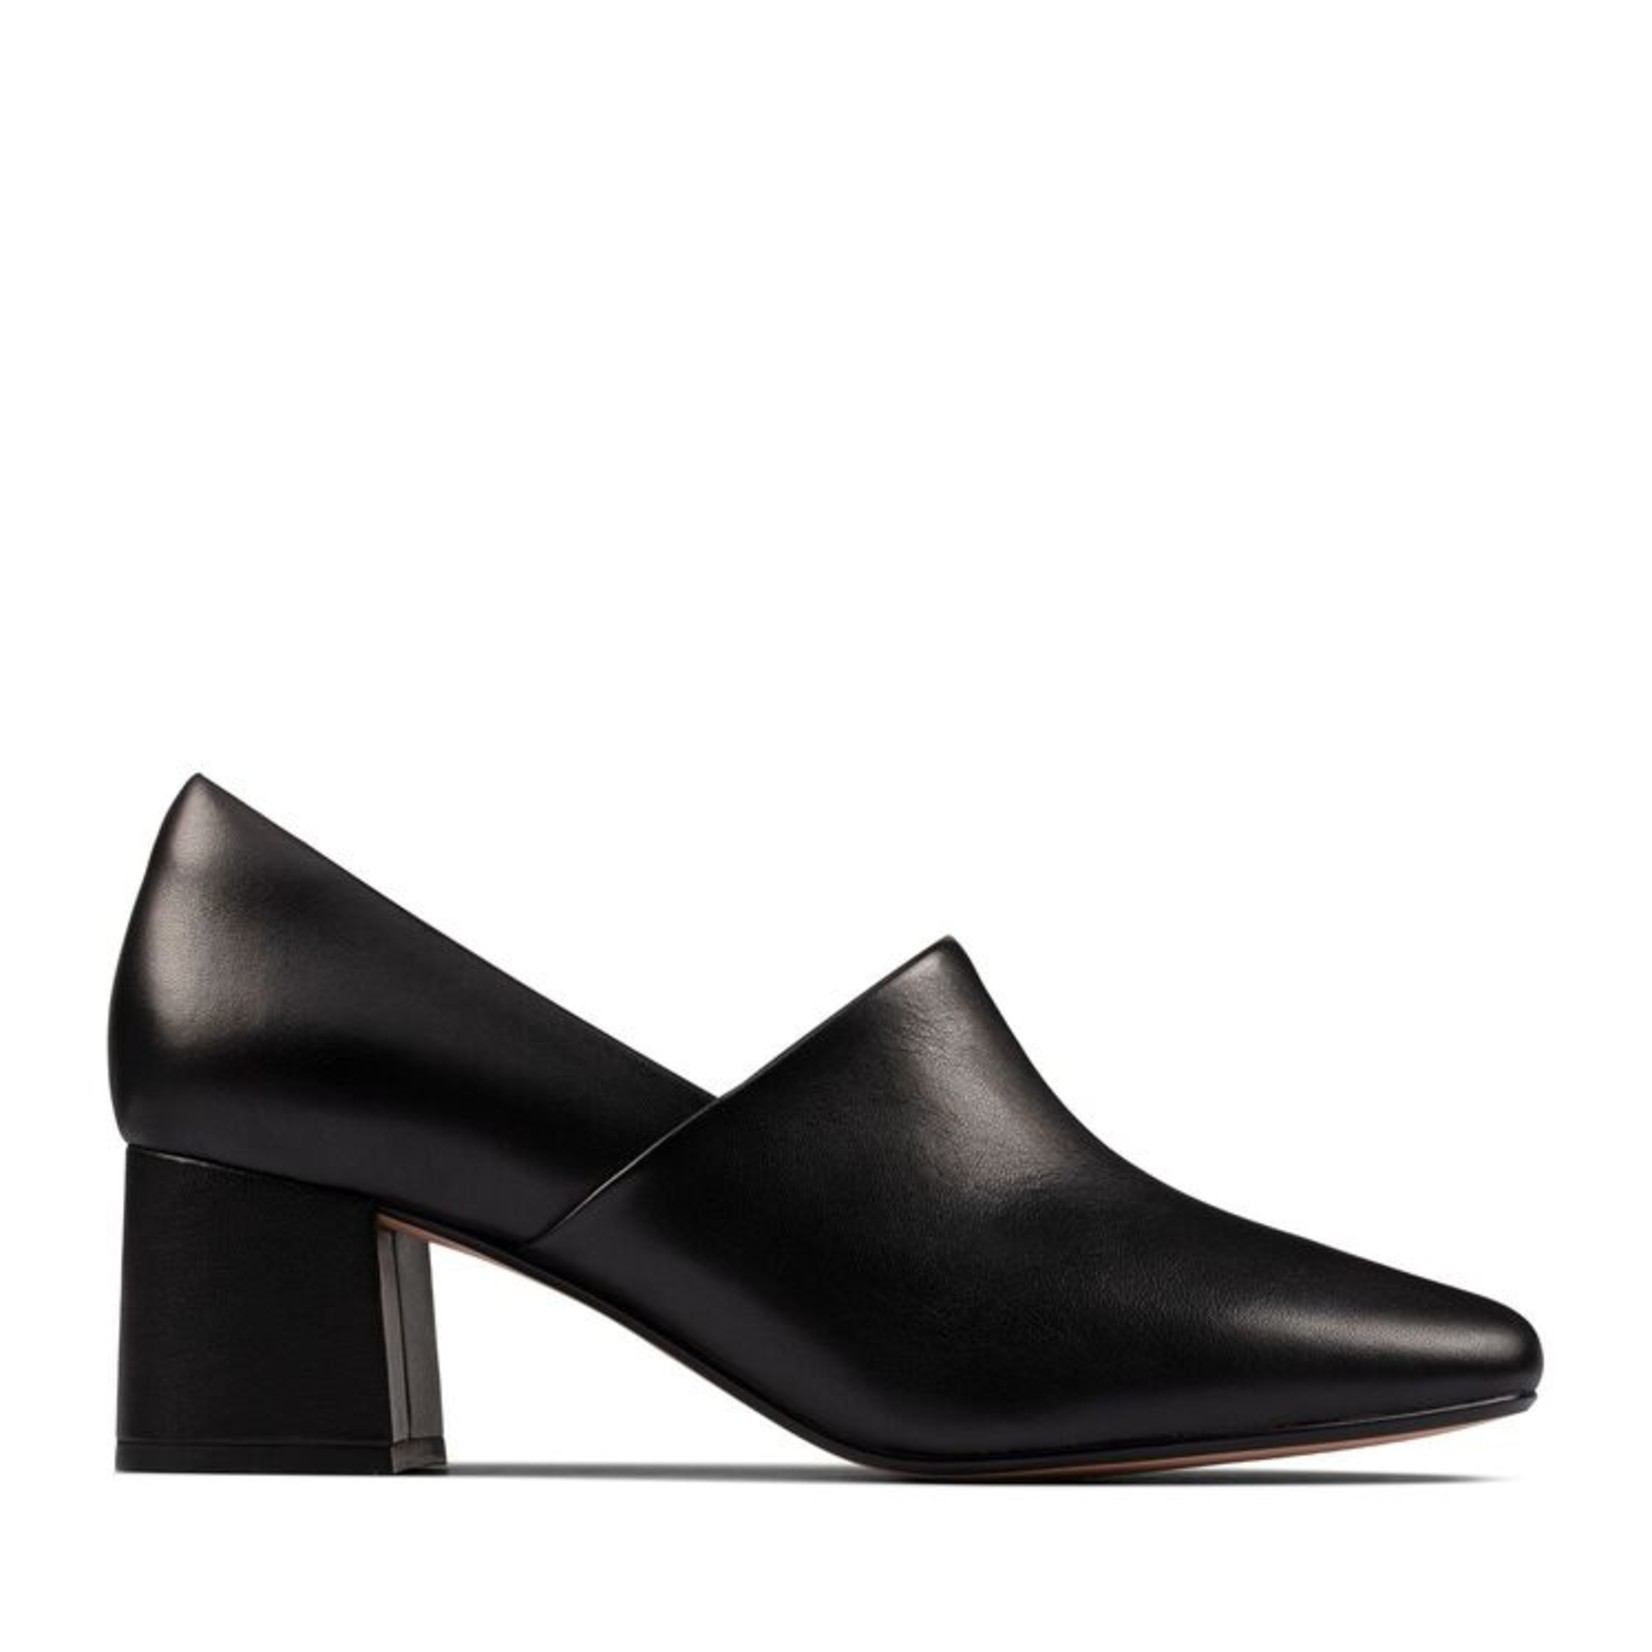 Clarks Sheer Lily